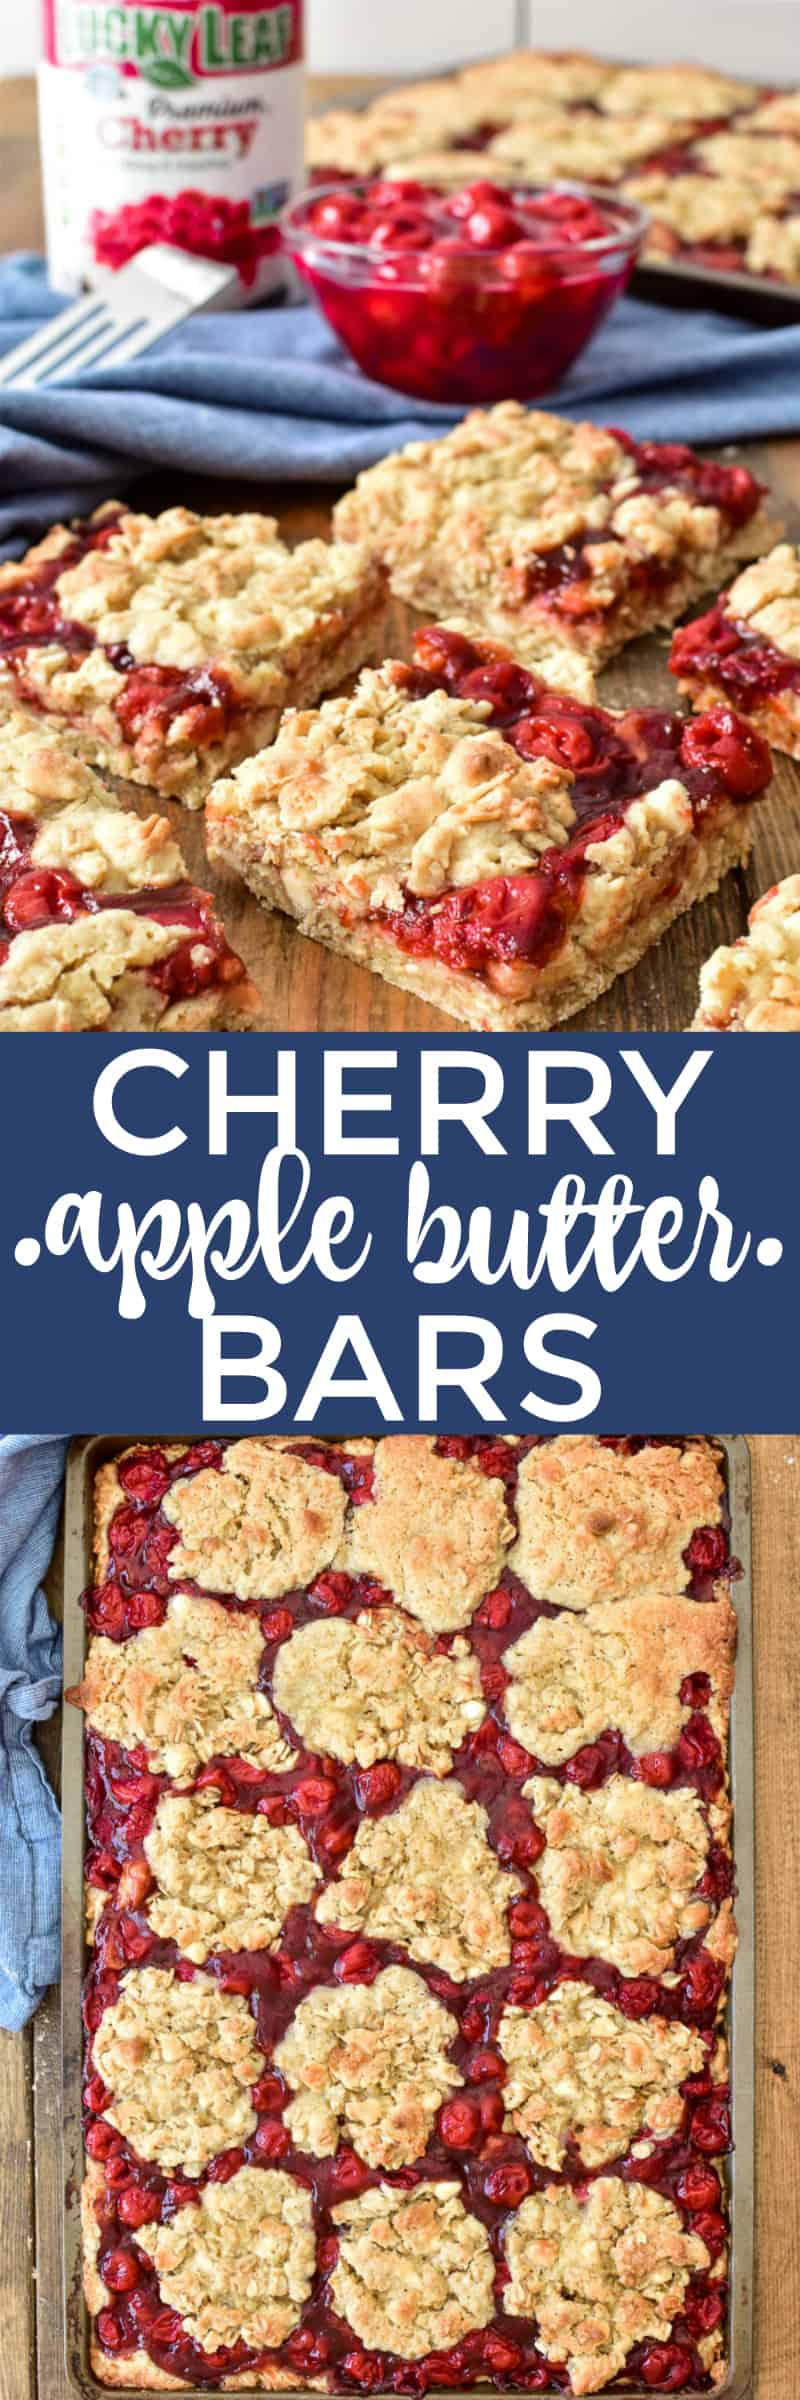 Collage image of Cherry Apple Butter Bars